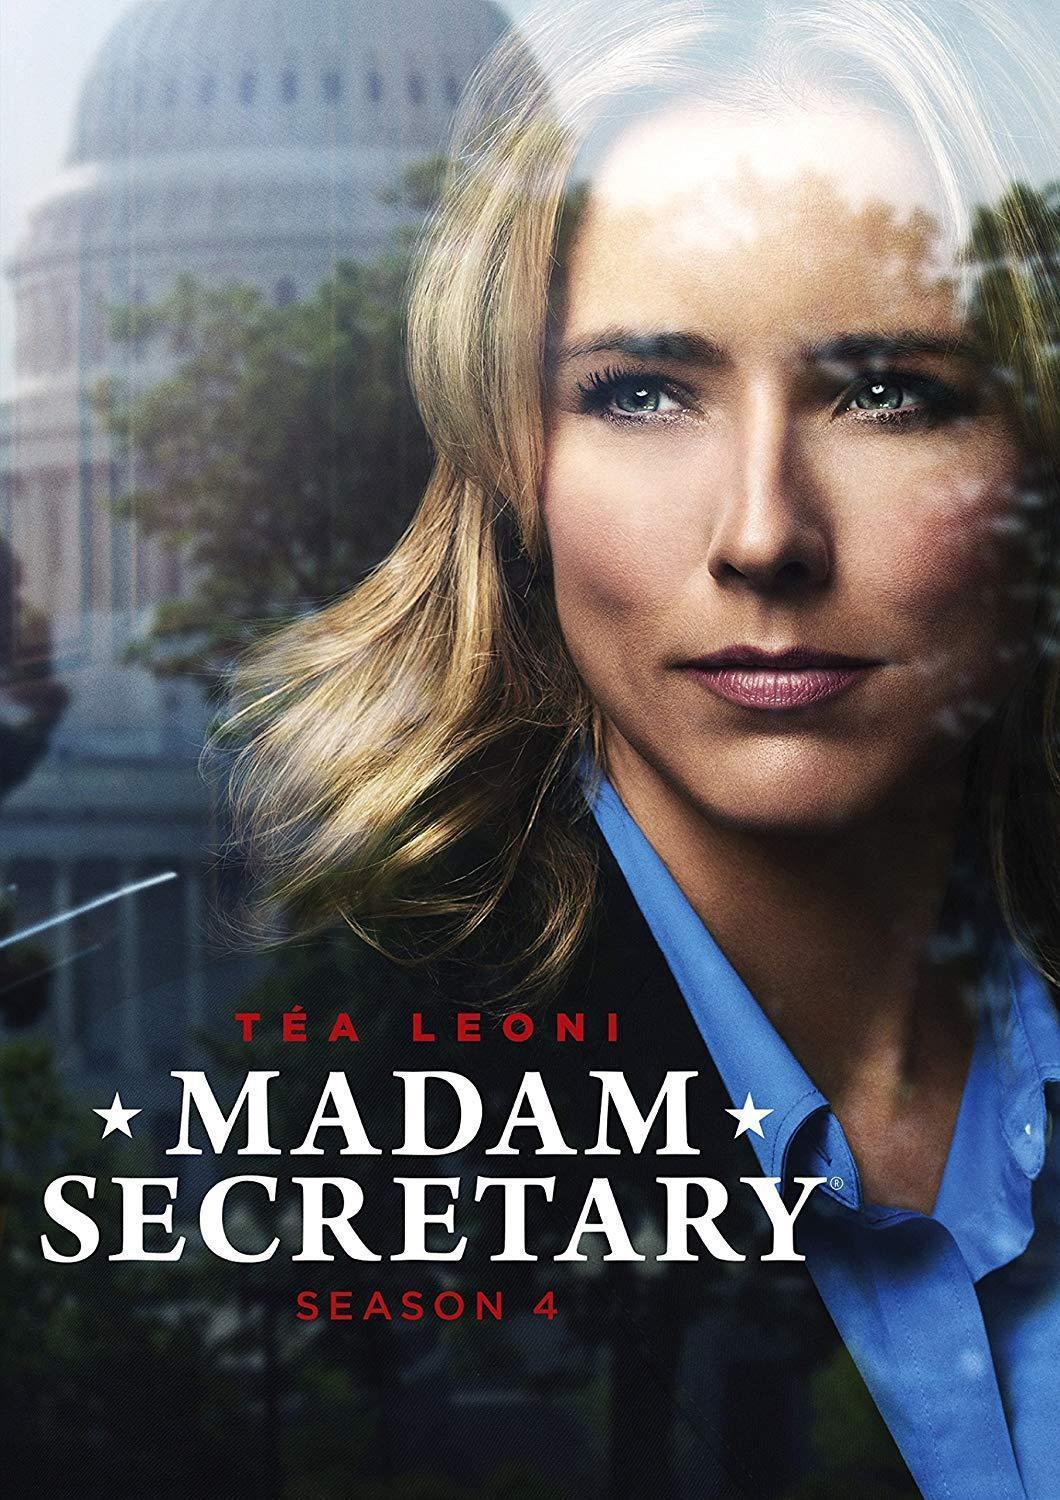 Madam Secretary season 4 DVD - DVDsHQ